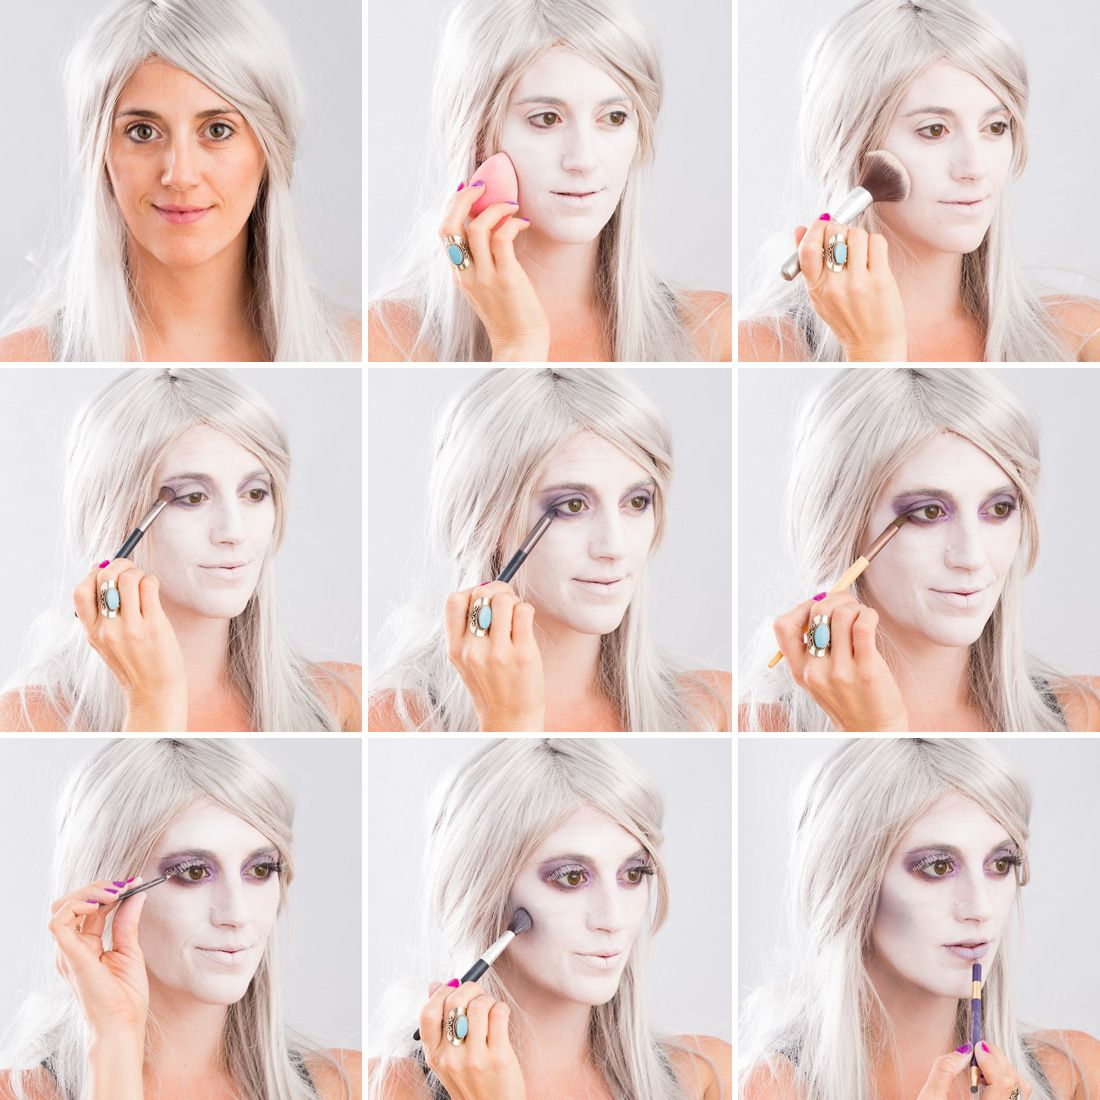 Follow this step by step tutorial for spooky ghost makeup follow this step by step tutorial for spooky ghost makeup baditri Images